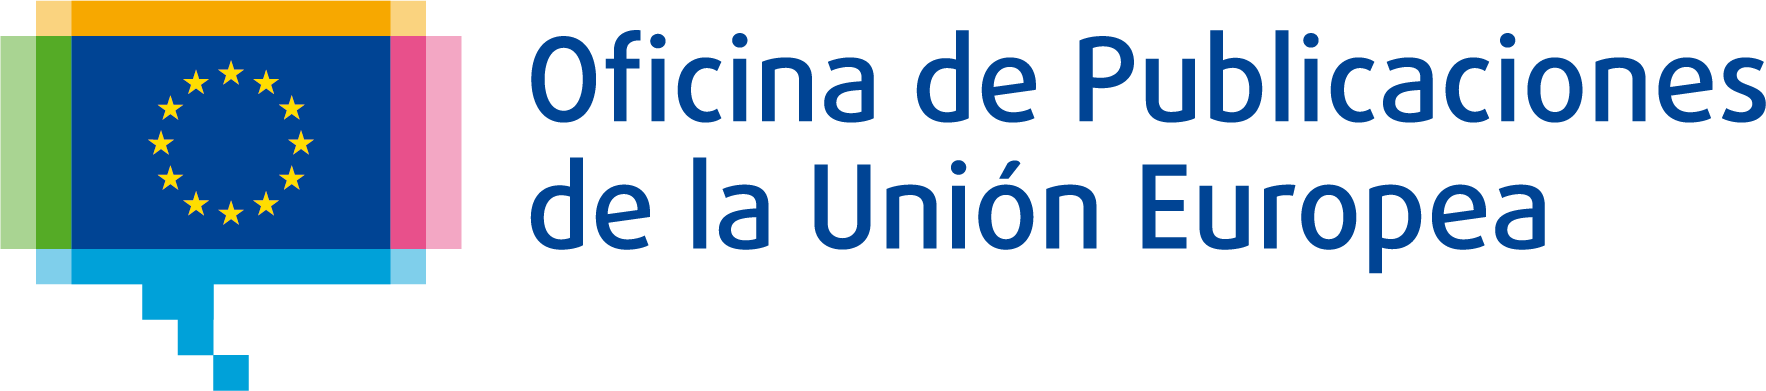 Photo of Oficina de Publicaciones de la Unión Europea